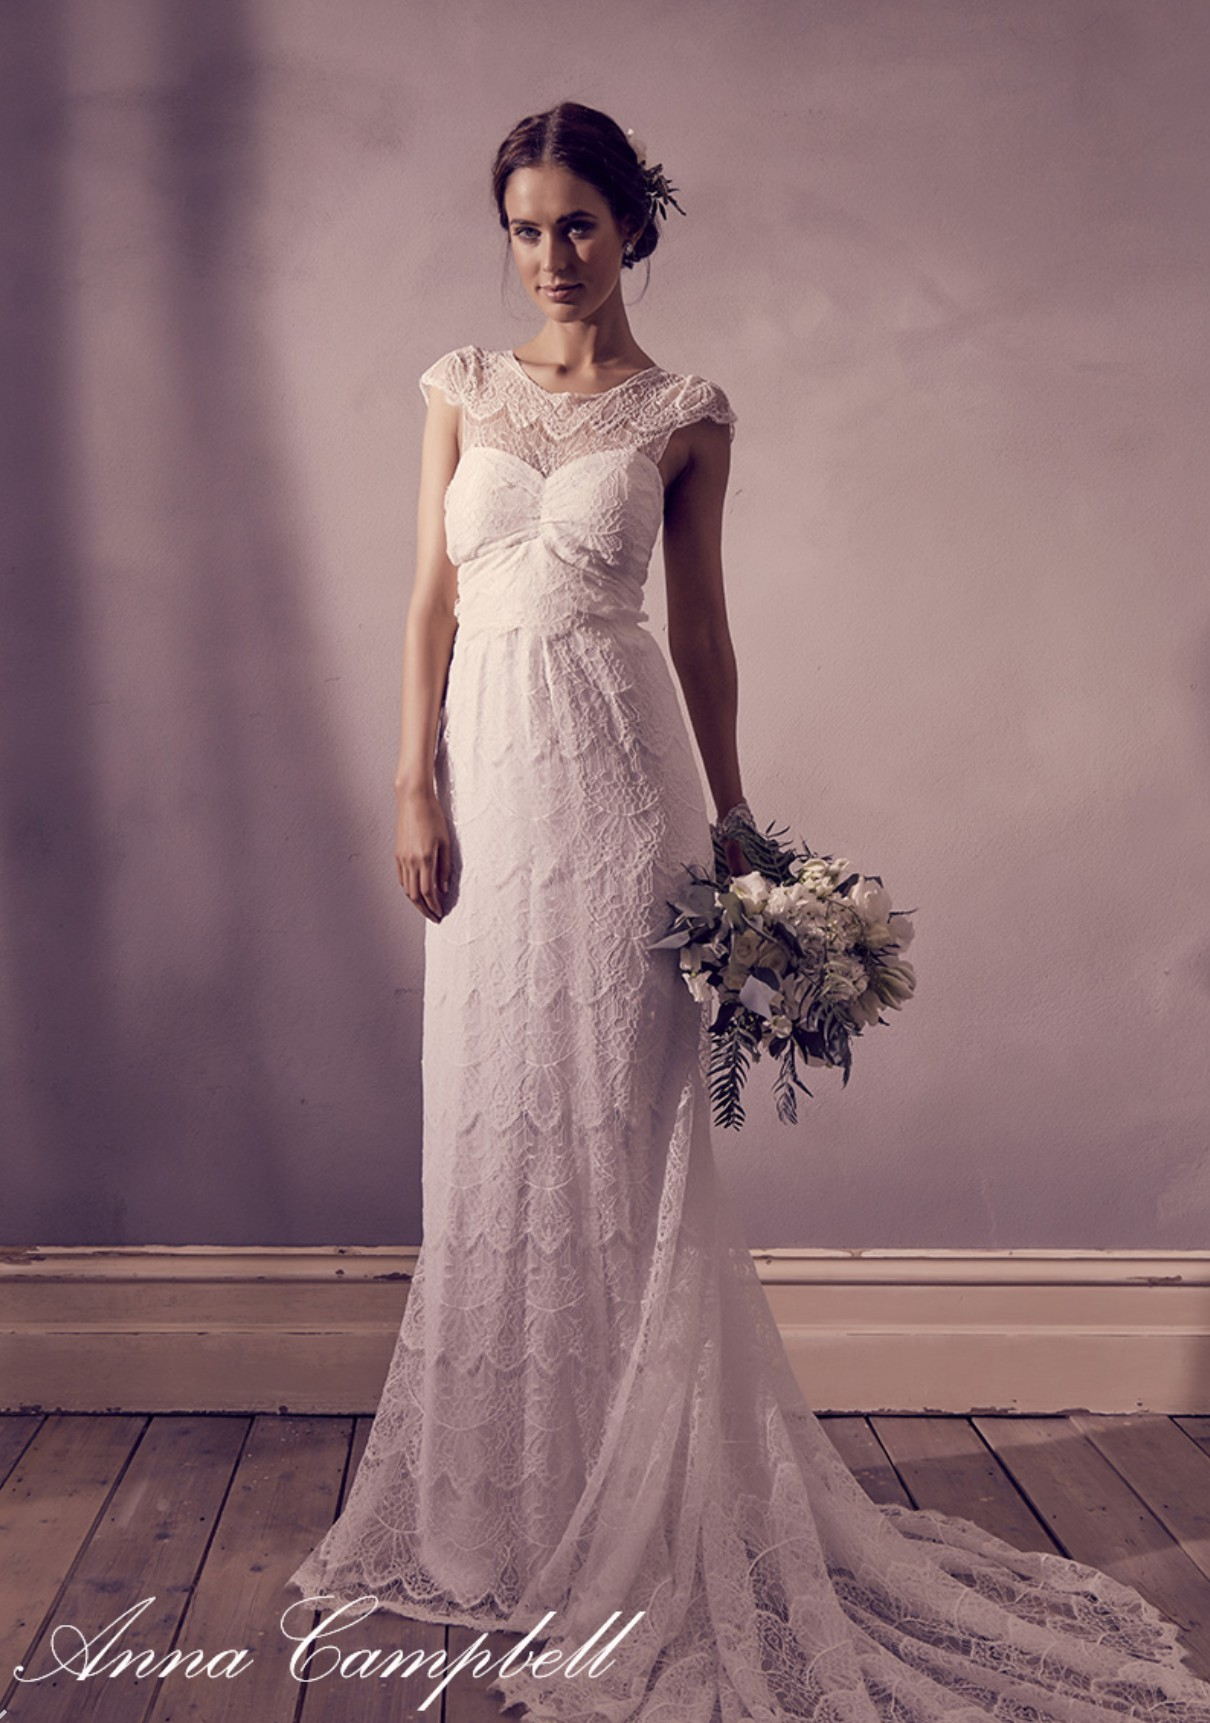 Anna campbell isobelle used wedding dresses stillwhite for Anna campbell wedding dress used